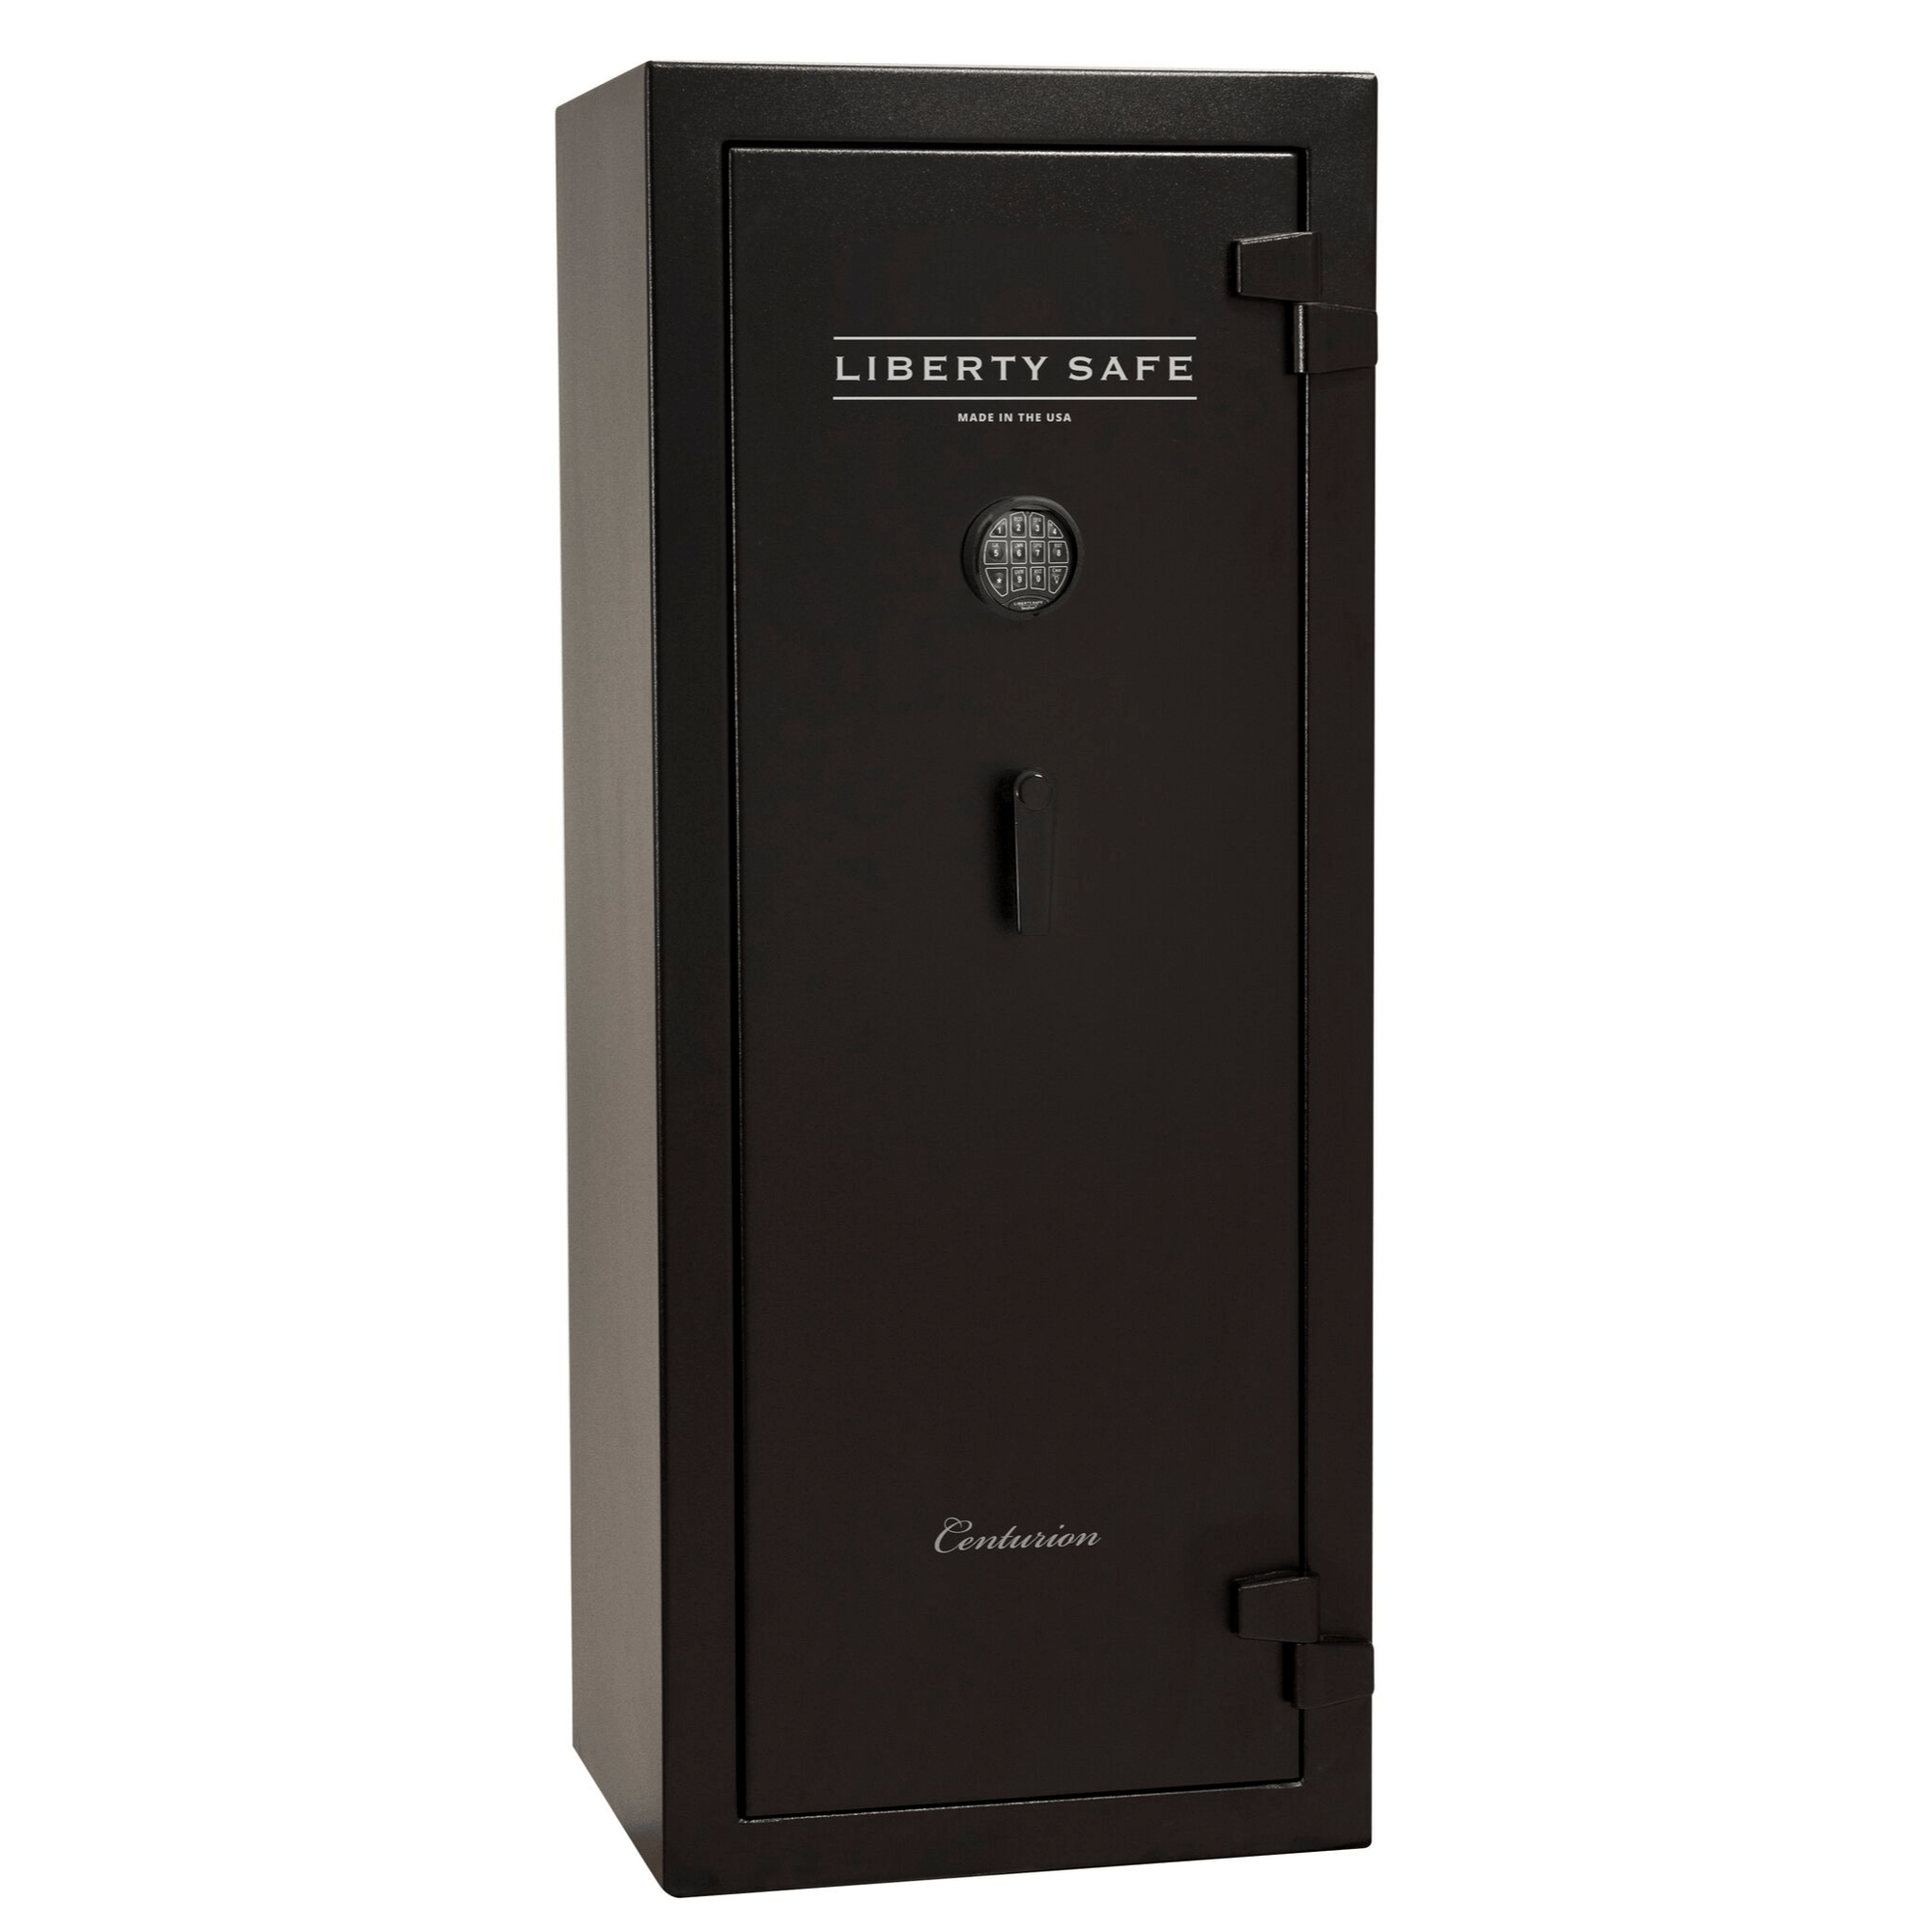 "Centurion | 18 | Level 1 Security | 30 Minute Fire Protection | Black | Black Electronic Lock | 59.5""(H) x 24.25""(W) x 22""(D)"